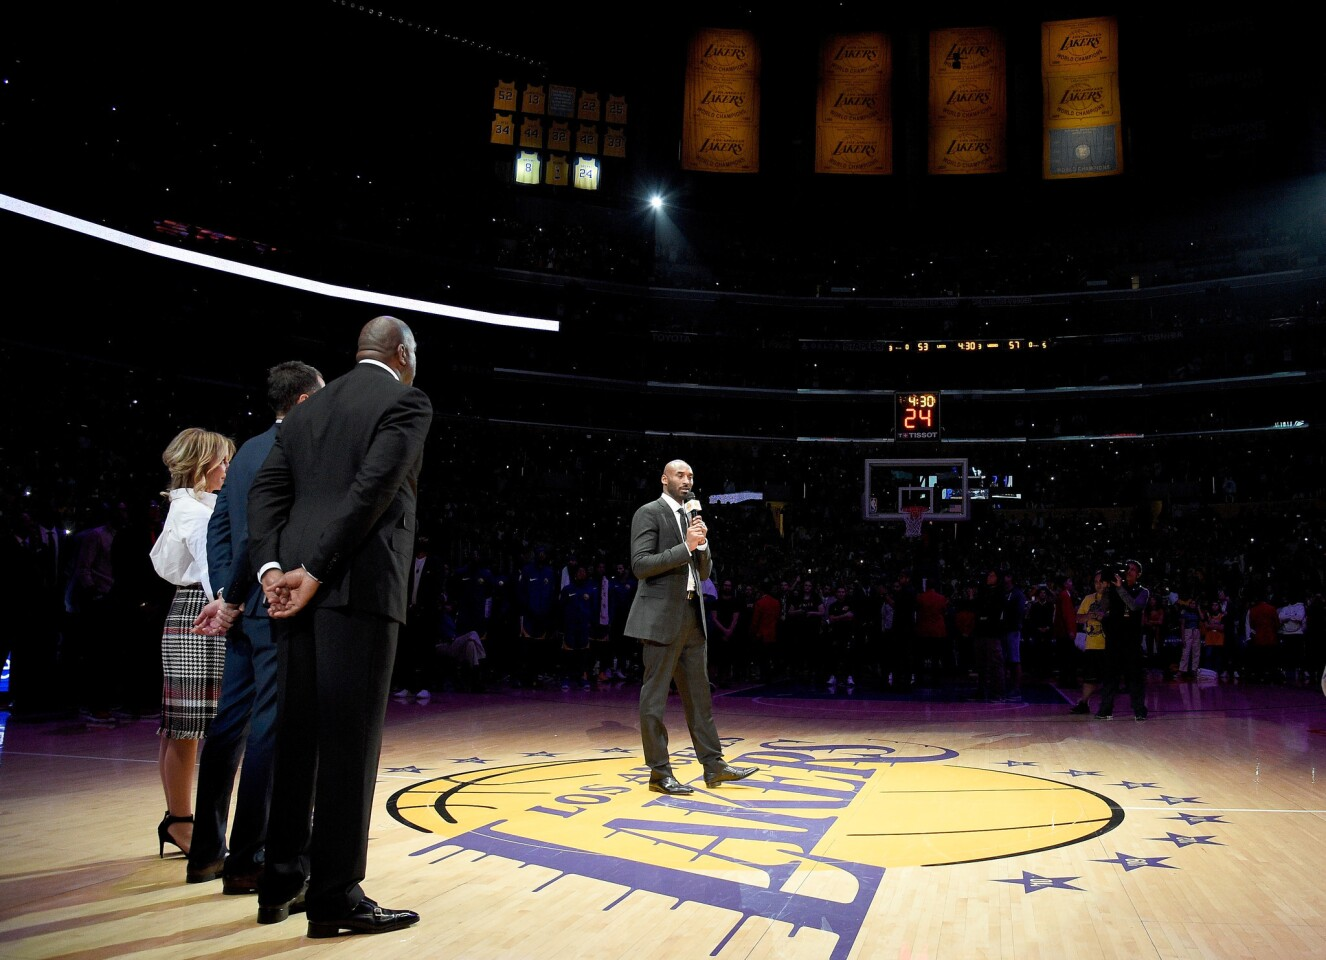 LOS ANGELES, CA - DECEMBER 18: Kobe Bryant addresses the crowd at halftime as both his #8 and #24 Los Angeles Lakers jerseys are retired at Staples Center on December 18, 2017 in Los Angeles, California. NOTE TO USER: User expressly acknowledges and agrees that, by downloading and or using this photograph, User is consenting to the terms and conditions of the Getty Images License Agreement.